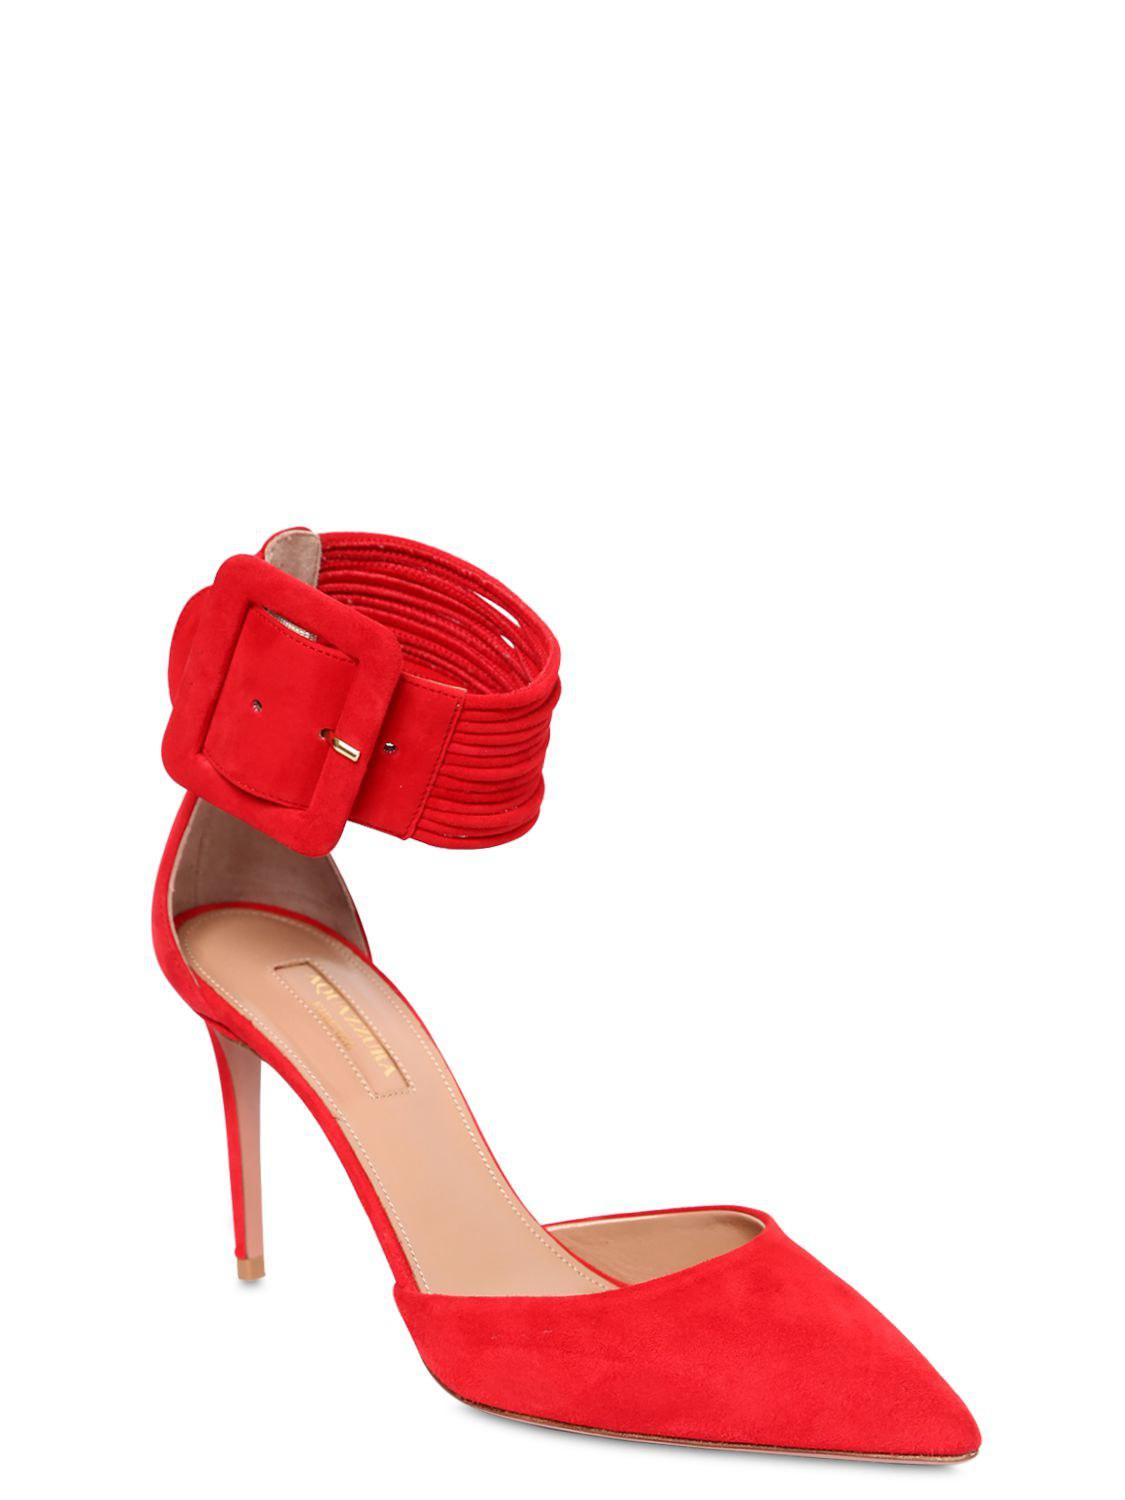 cda0ab20ac6 Aquazzura 85mm Casa Blanca Suede Pumps in Red - Save 58% - Lyst